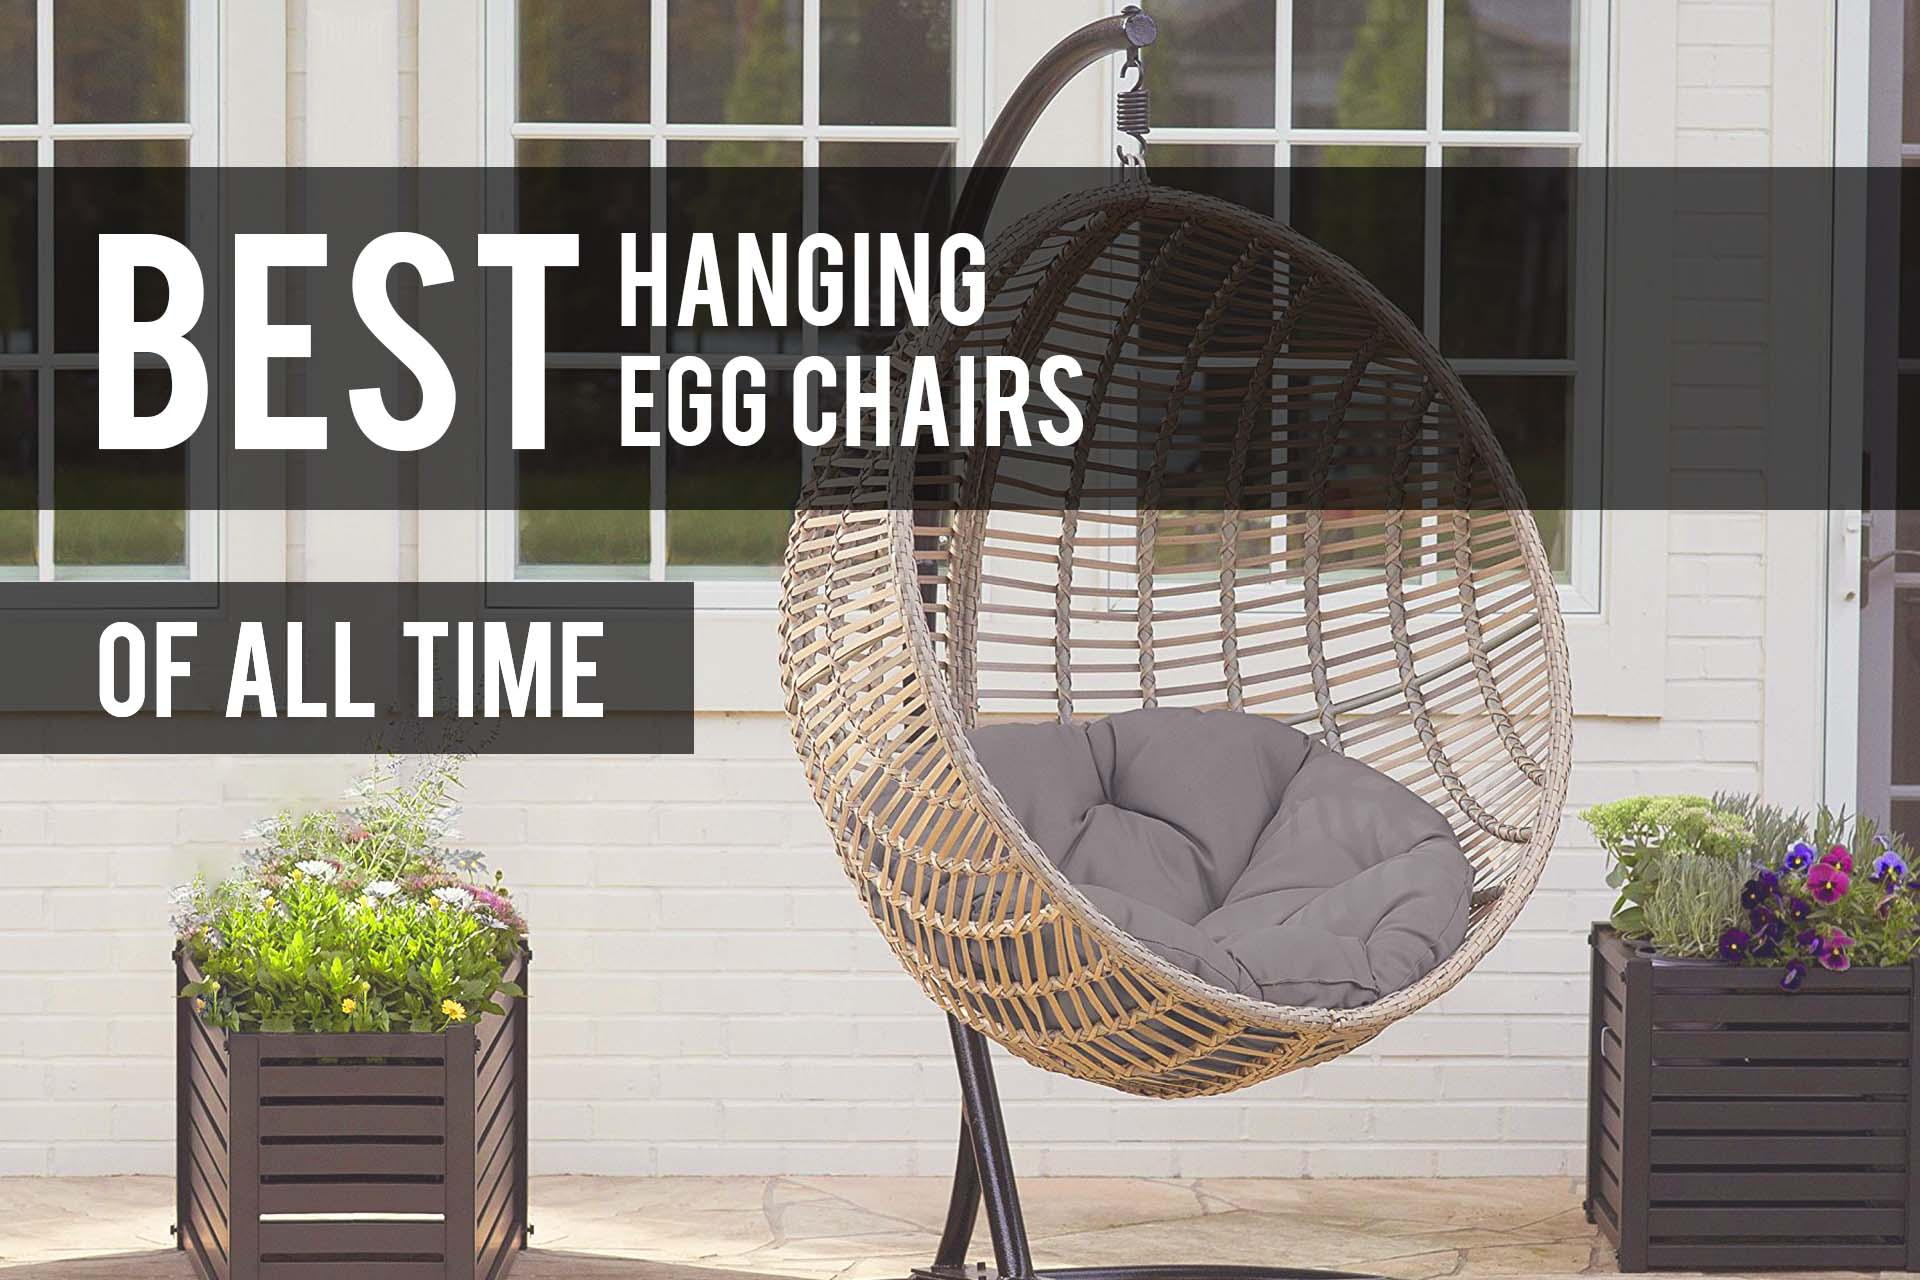 Stupendous Best Hanging Egg Chairs 2019 Reviews The Patio Pro Andrewgaddart Wooden Chair Designs For Living Room Andrewgaddartcom